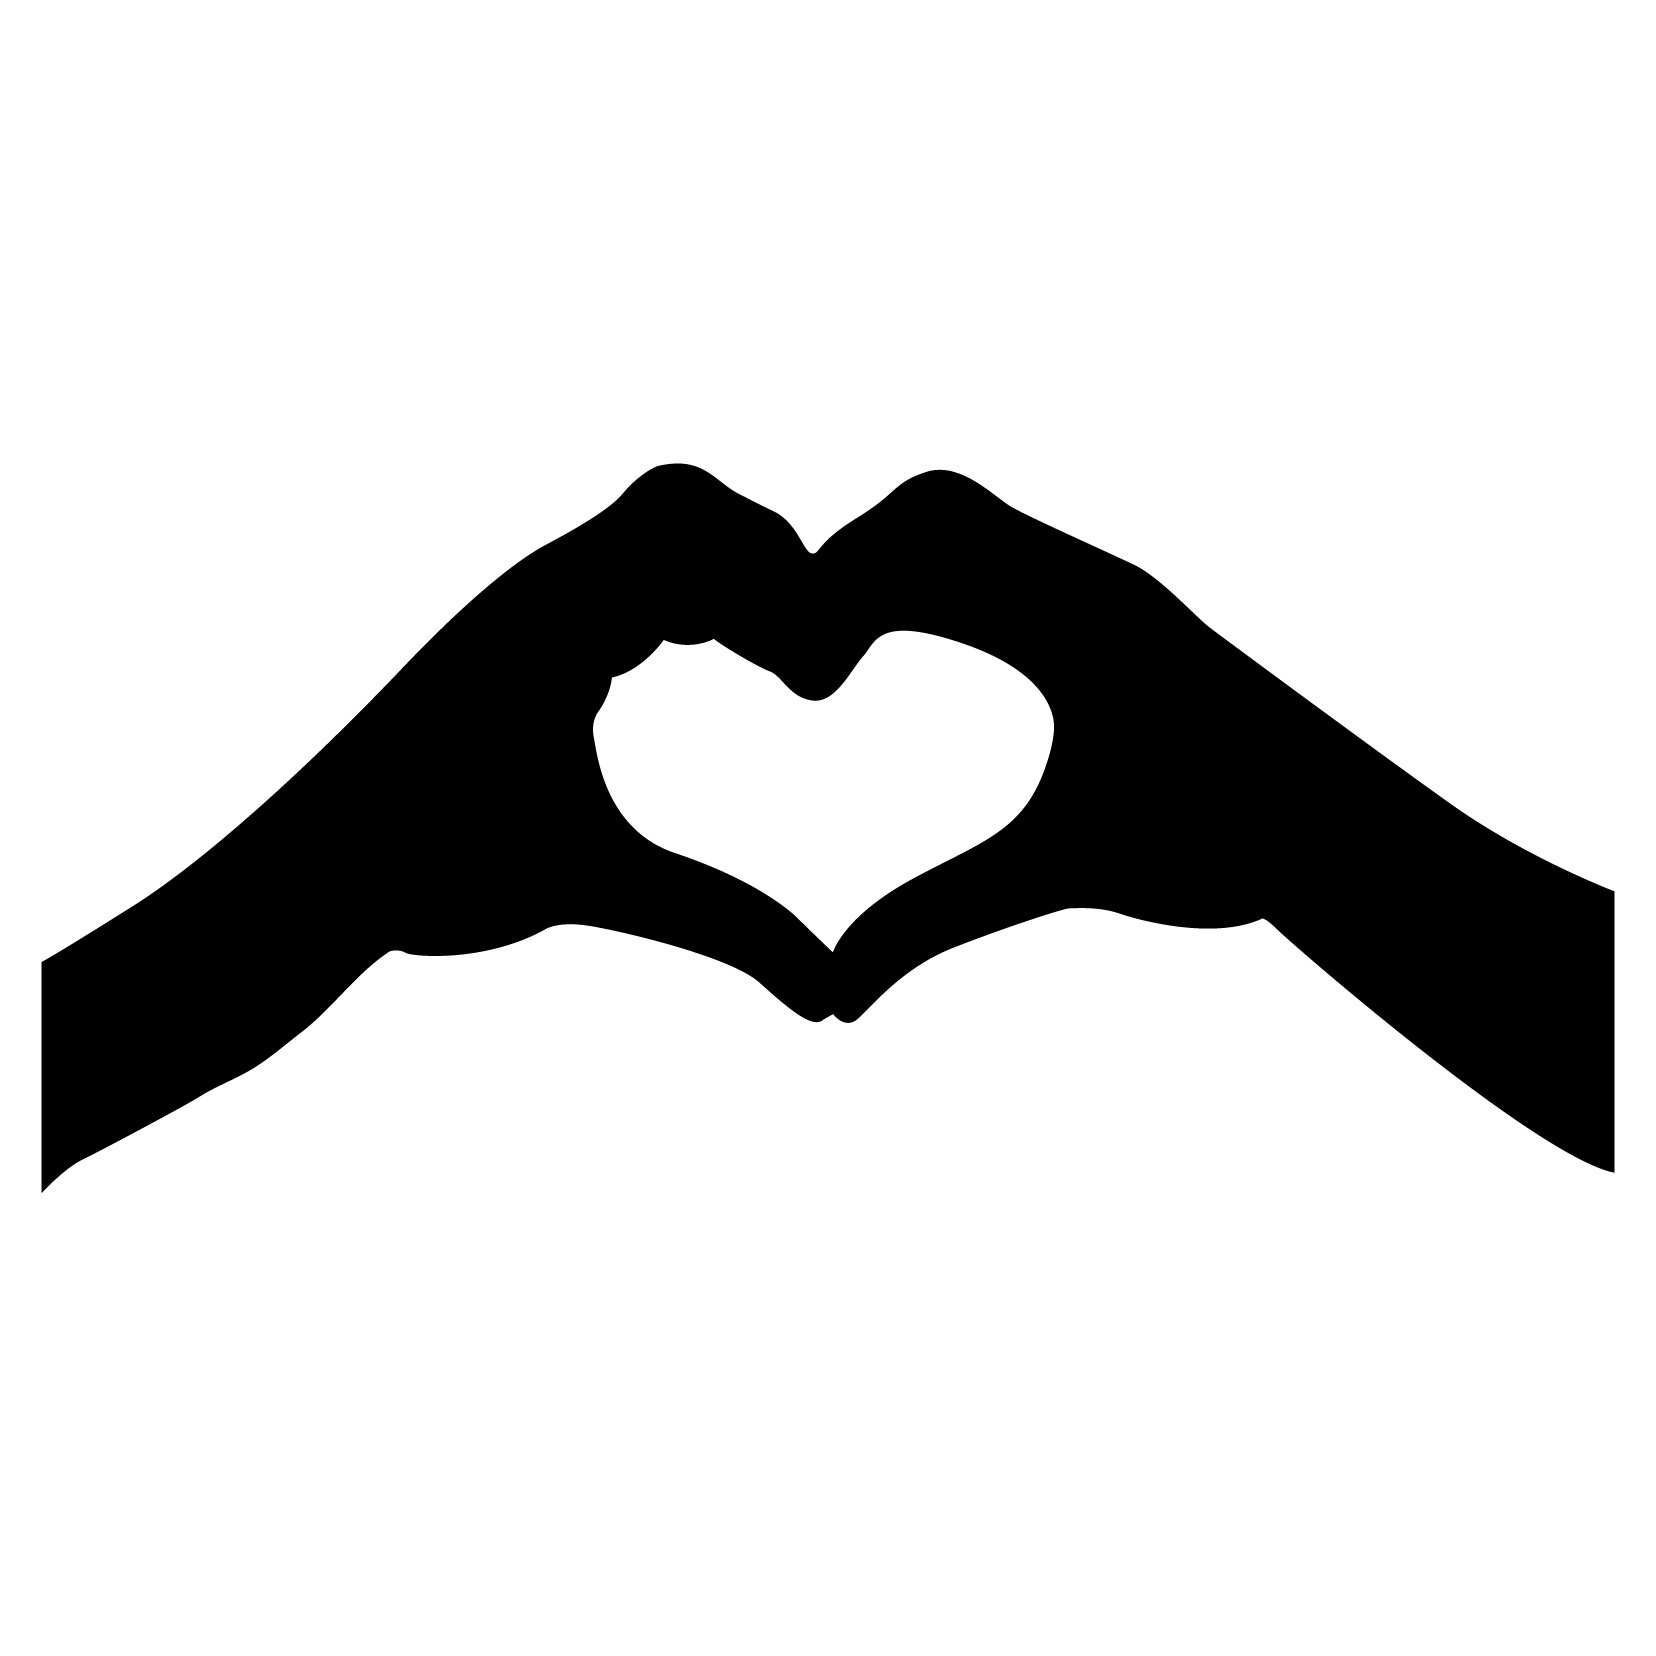 Heart Hand Sign Silhouette - Small - Smartphones, Tablets, and Computers - Vinyl Wall Art Decal for Homes, Offices, Kids Rooms, Nurseries, Schools, High Schools, Colleges, Universities, Interior Designers, Architects, Remodelers